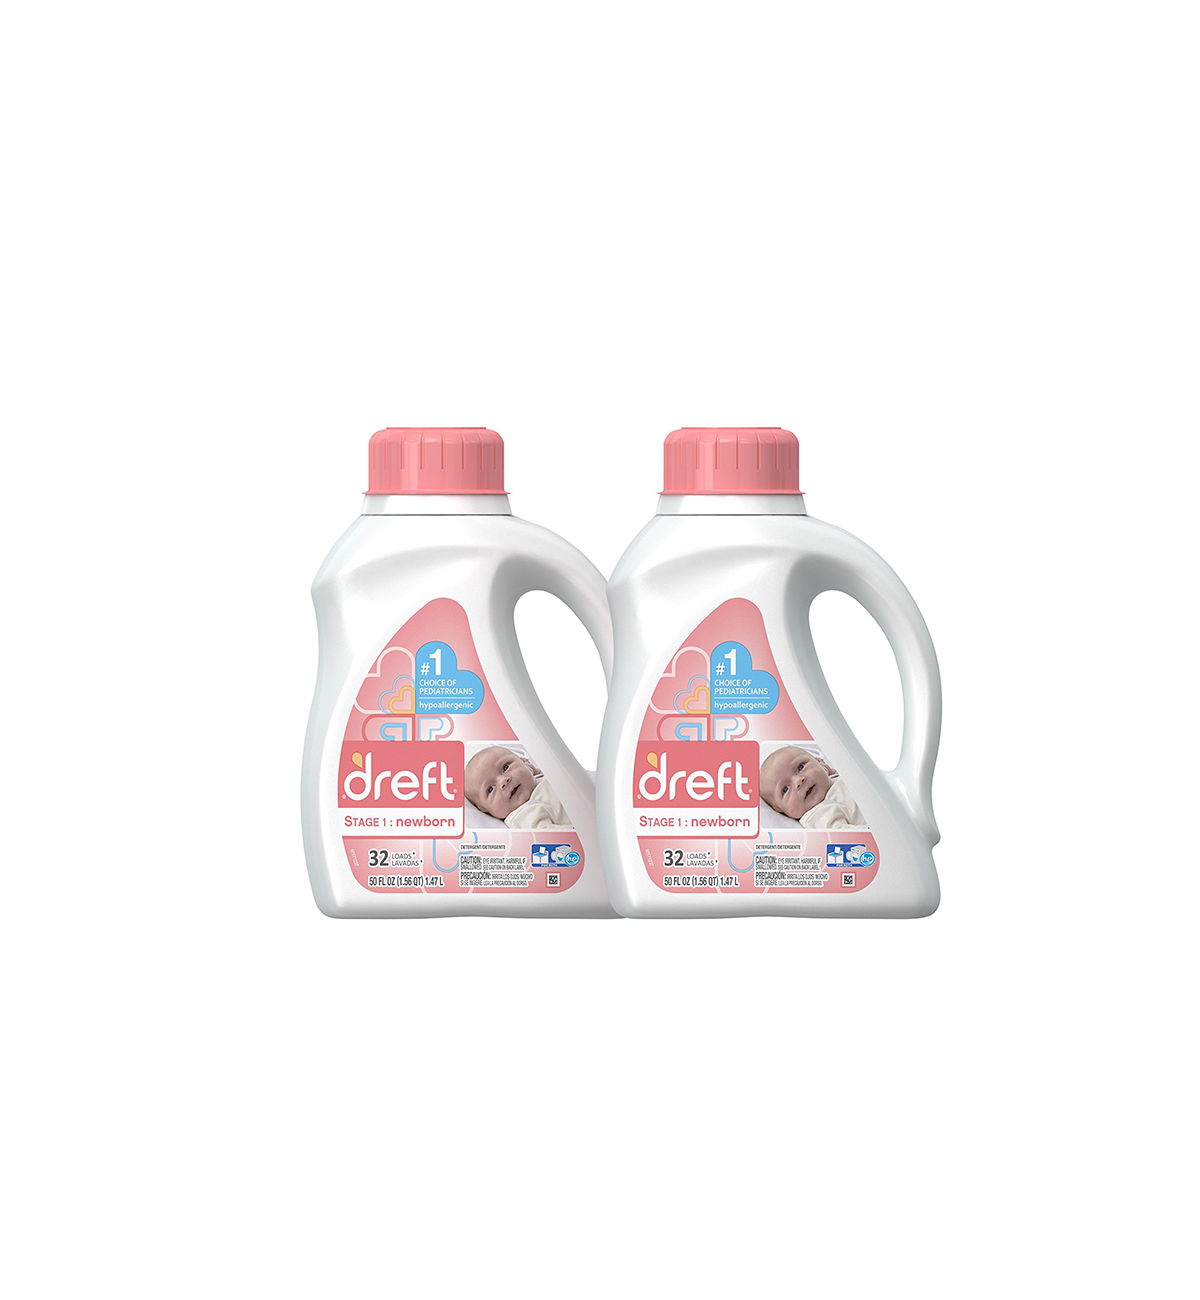 Amazon Best Sellers gentle detergent